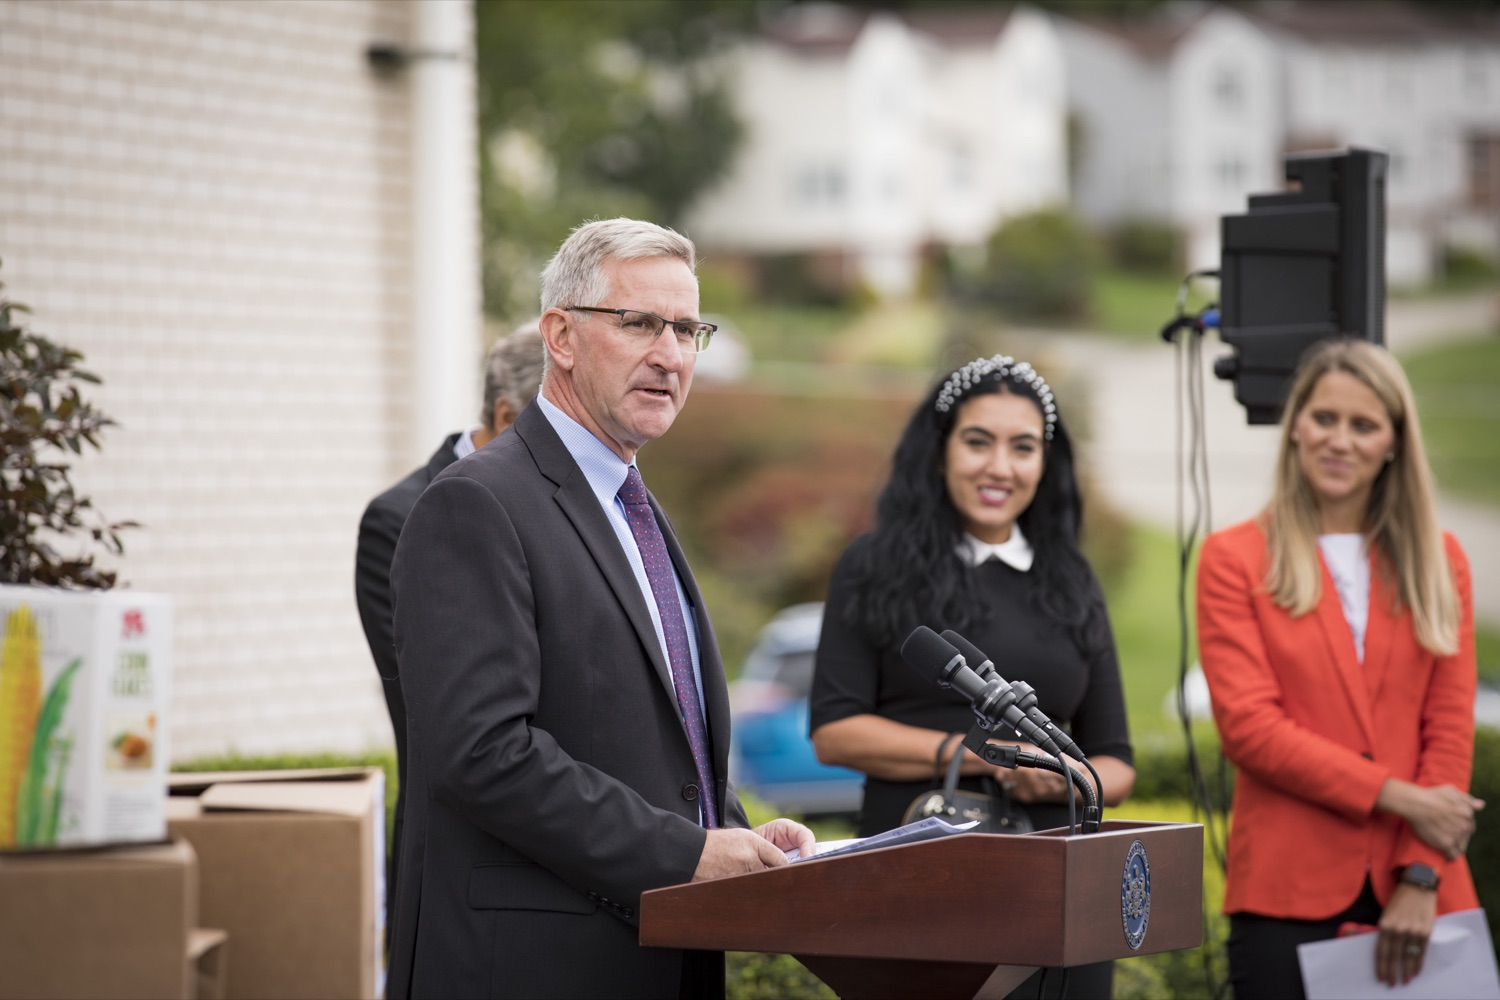 """<a href=""""https://filesource.wostreaming.net/commonwealthofpa/photo/19091_ag_doordash_cz_01.jpg"""" target=""""_blank"""">⇣Download Photo<br></a>Department of Agriculture Secretary Russell Redding announces partnership with DoorDash to deliver meals to seniors in need, in Delmont, PA on September 23, 2021."""